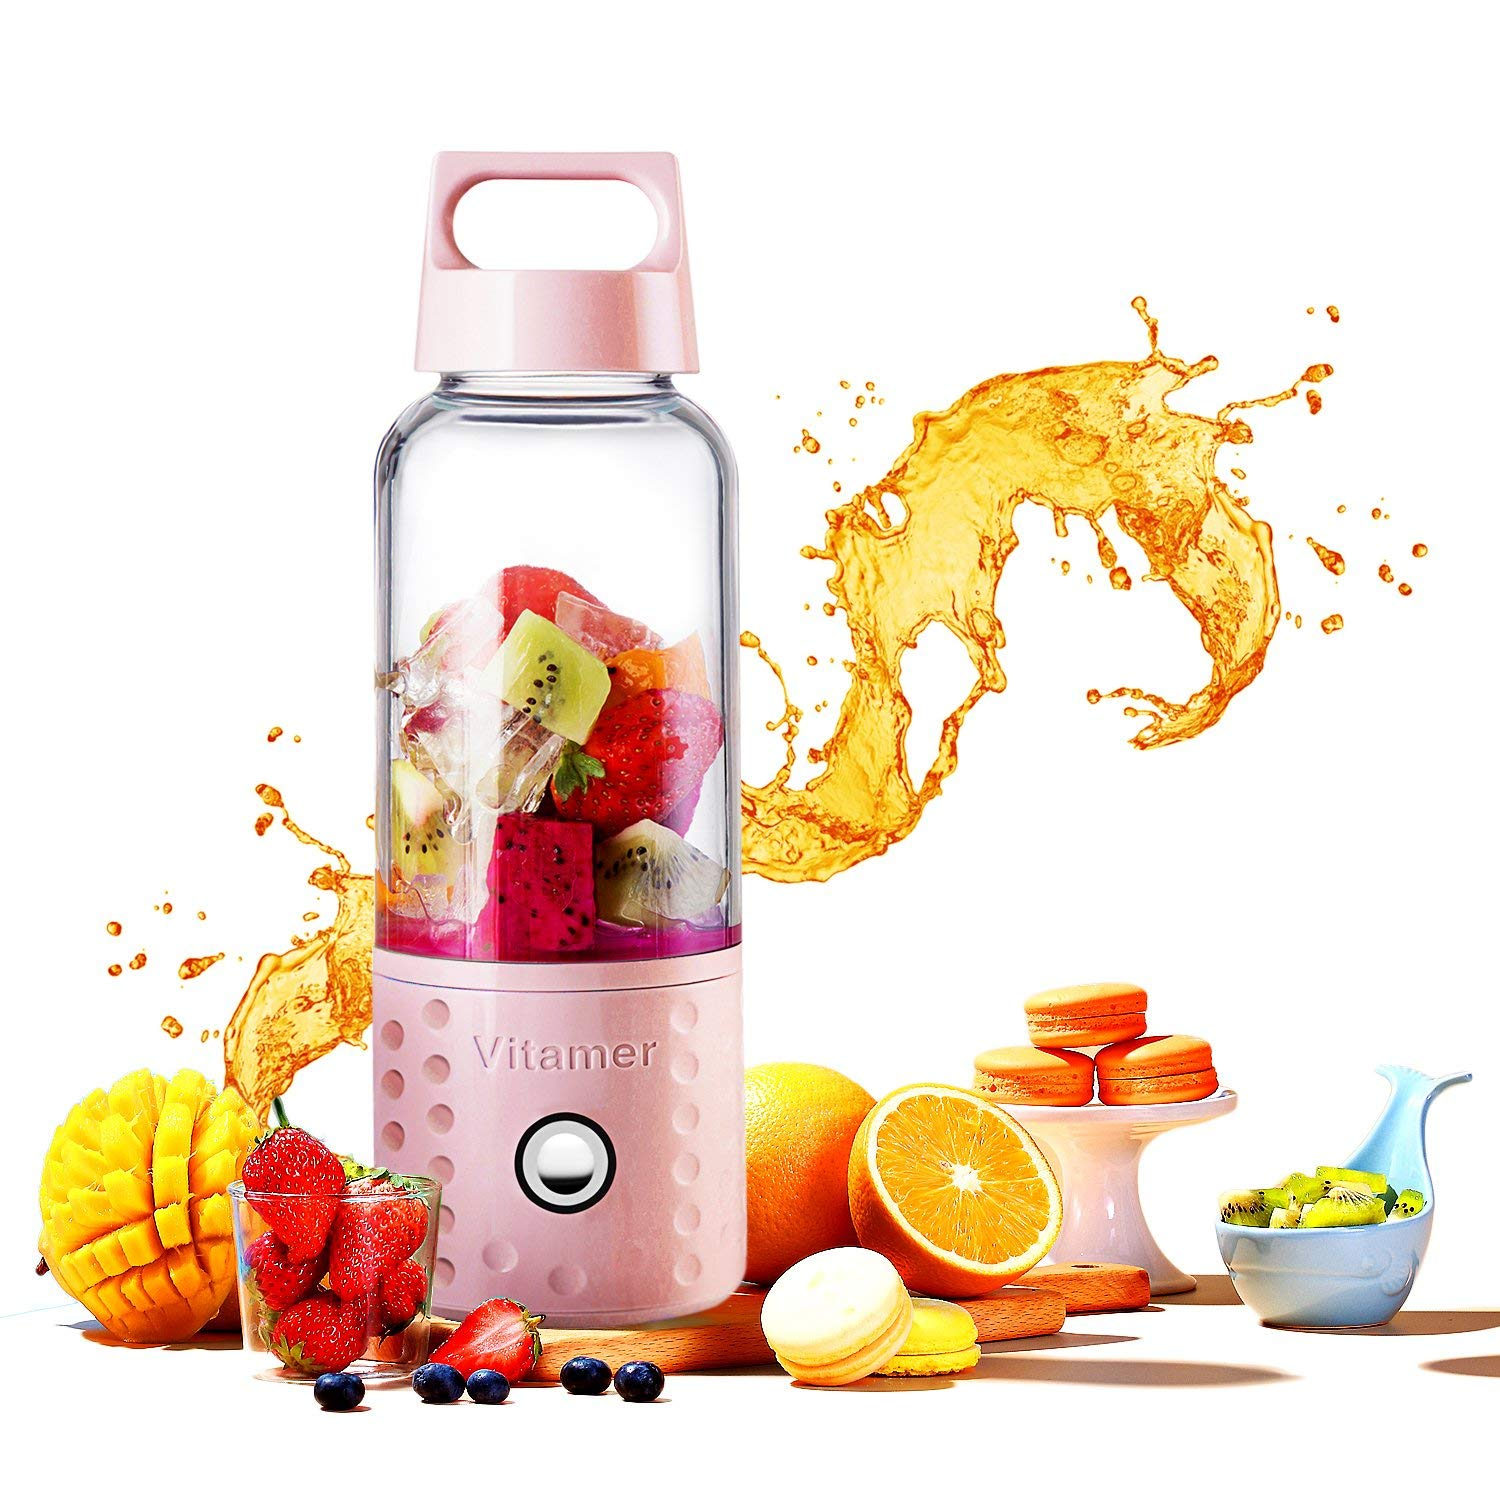 500ml Portable Blender Orange Juicer Cup Smoothie Blender USB Juicer Cup Fruit Mixing Machine With 4000mAh Rechargeable Batterie